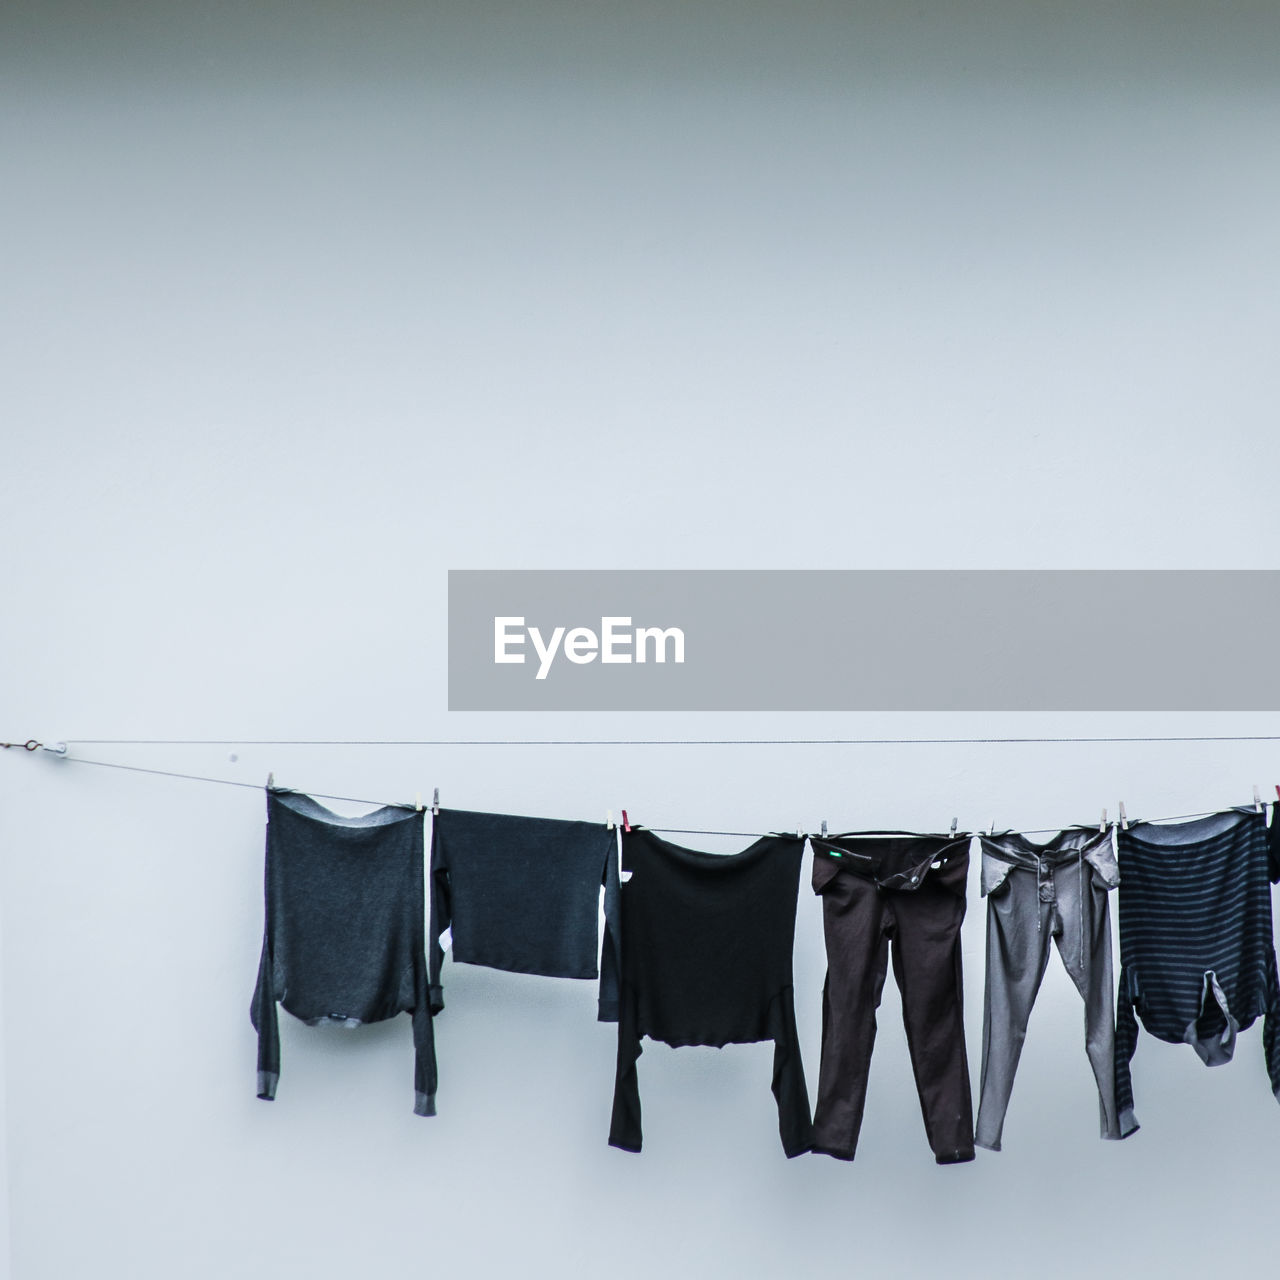 hanging, clothing, drying, clothesline, no people, copy space, laundry, in a row, side by side, group of objects, white color, day, rope, clothespin, textile, nature, sky, choice, coathanger, variation